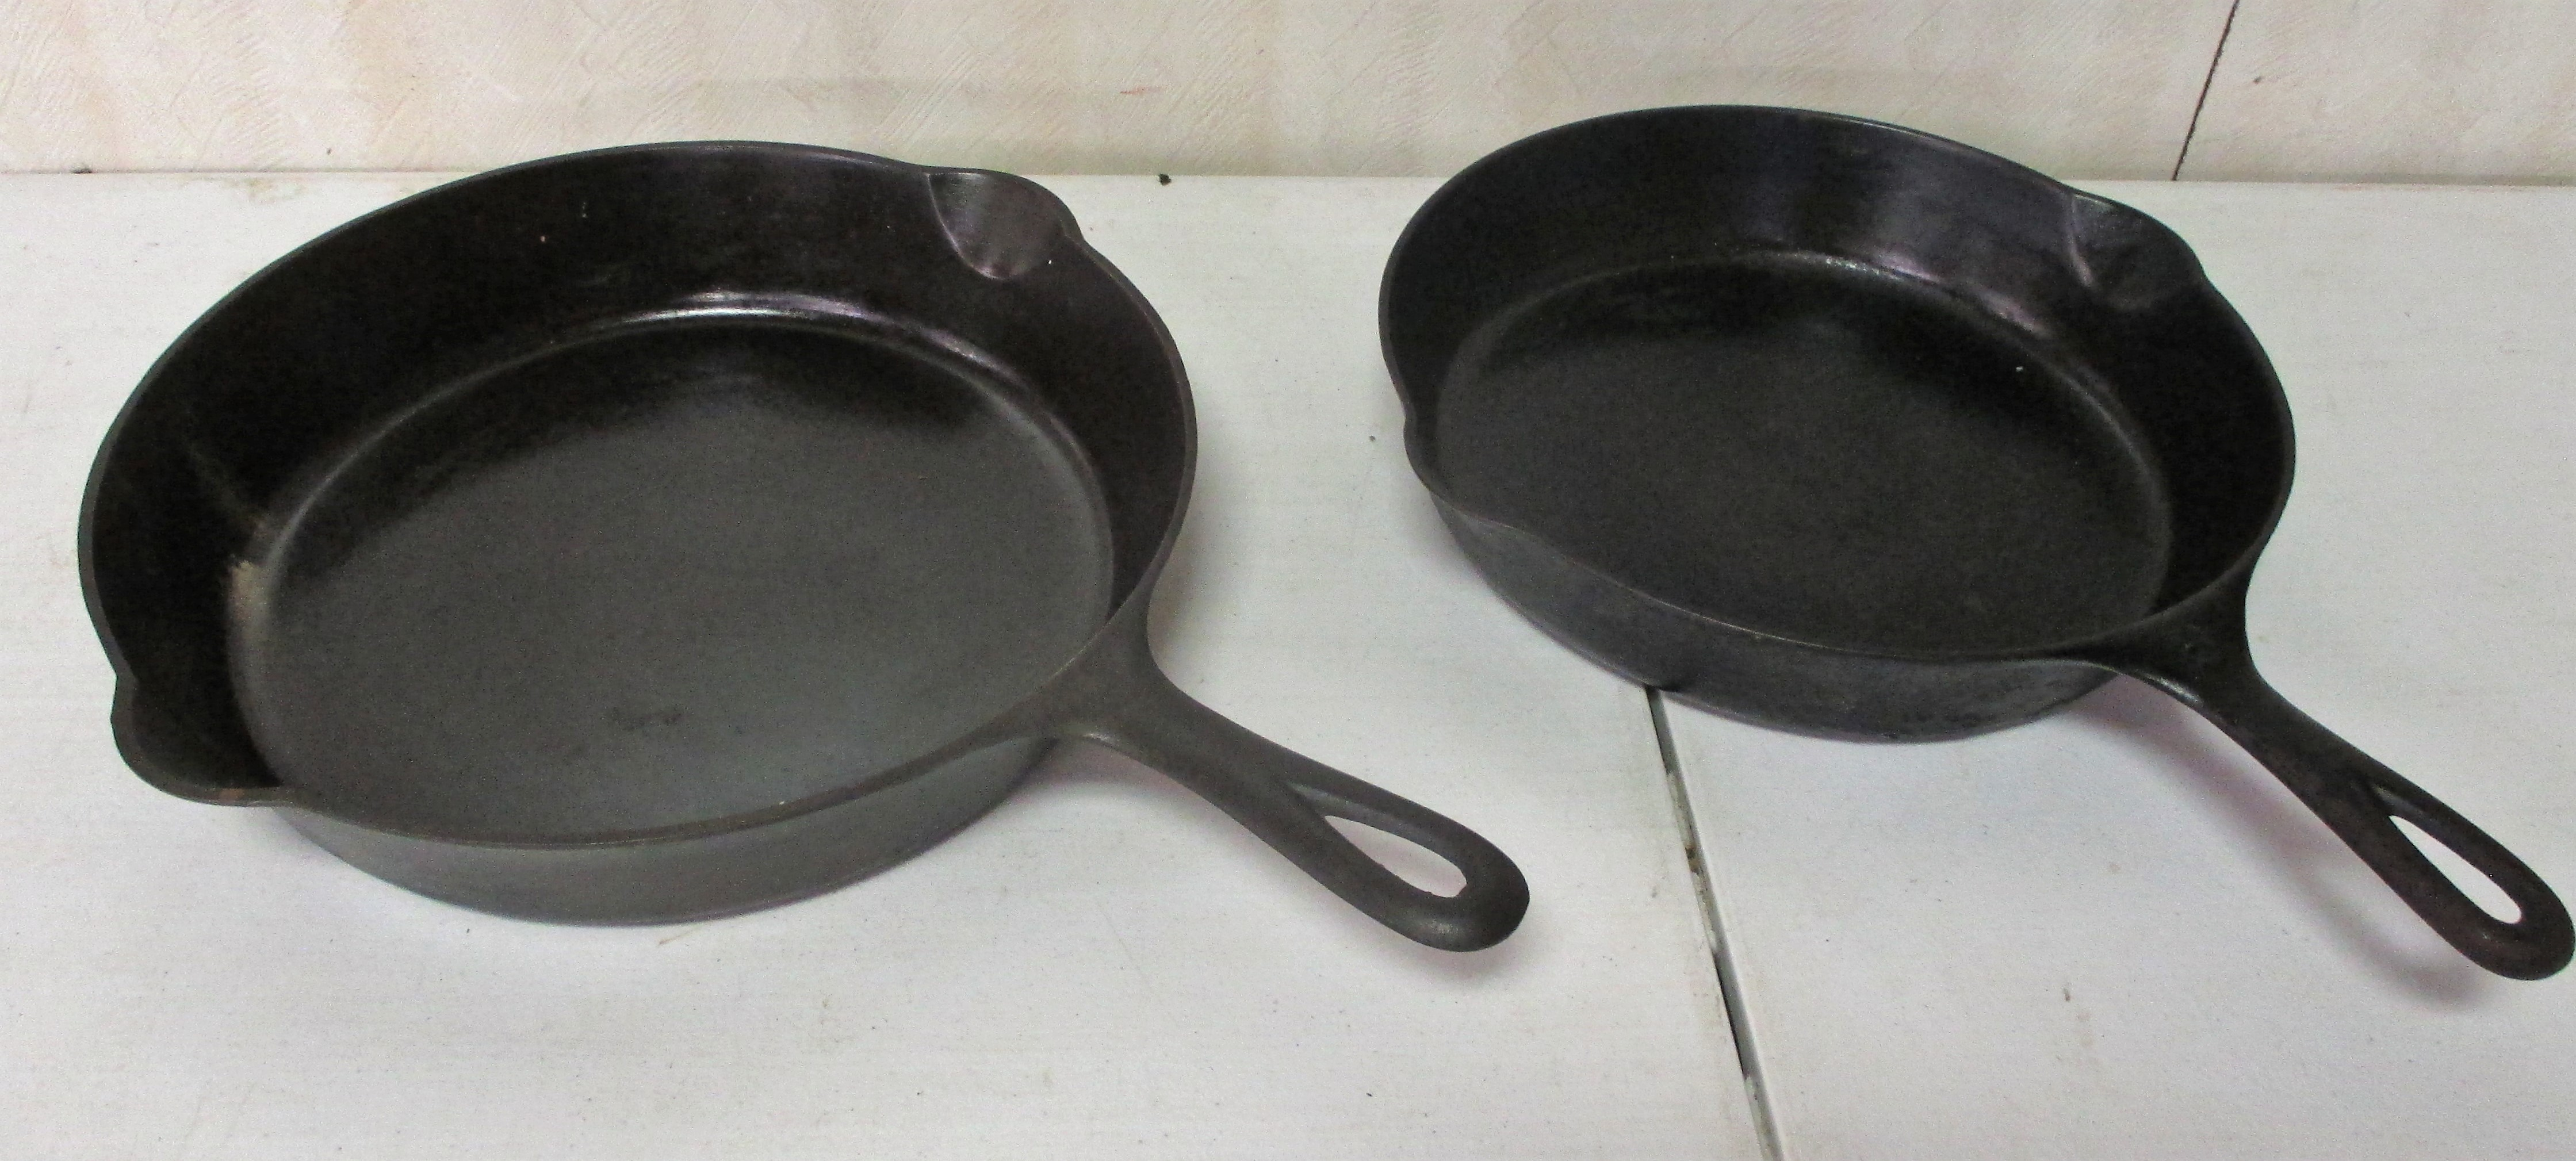 121: #8 And #9 Griswold Skillets